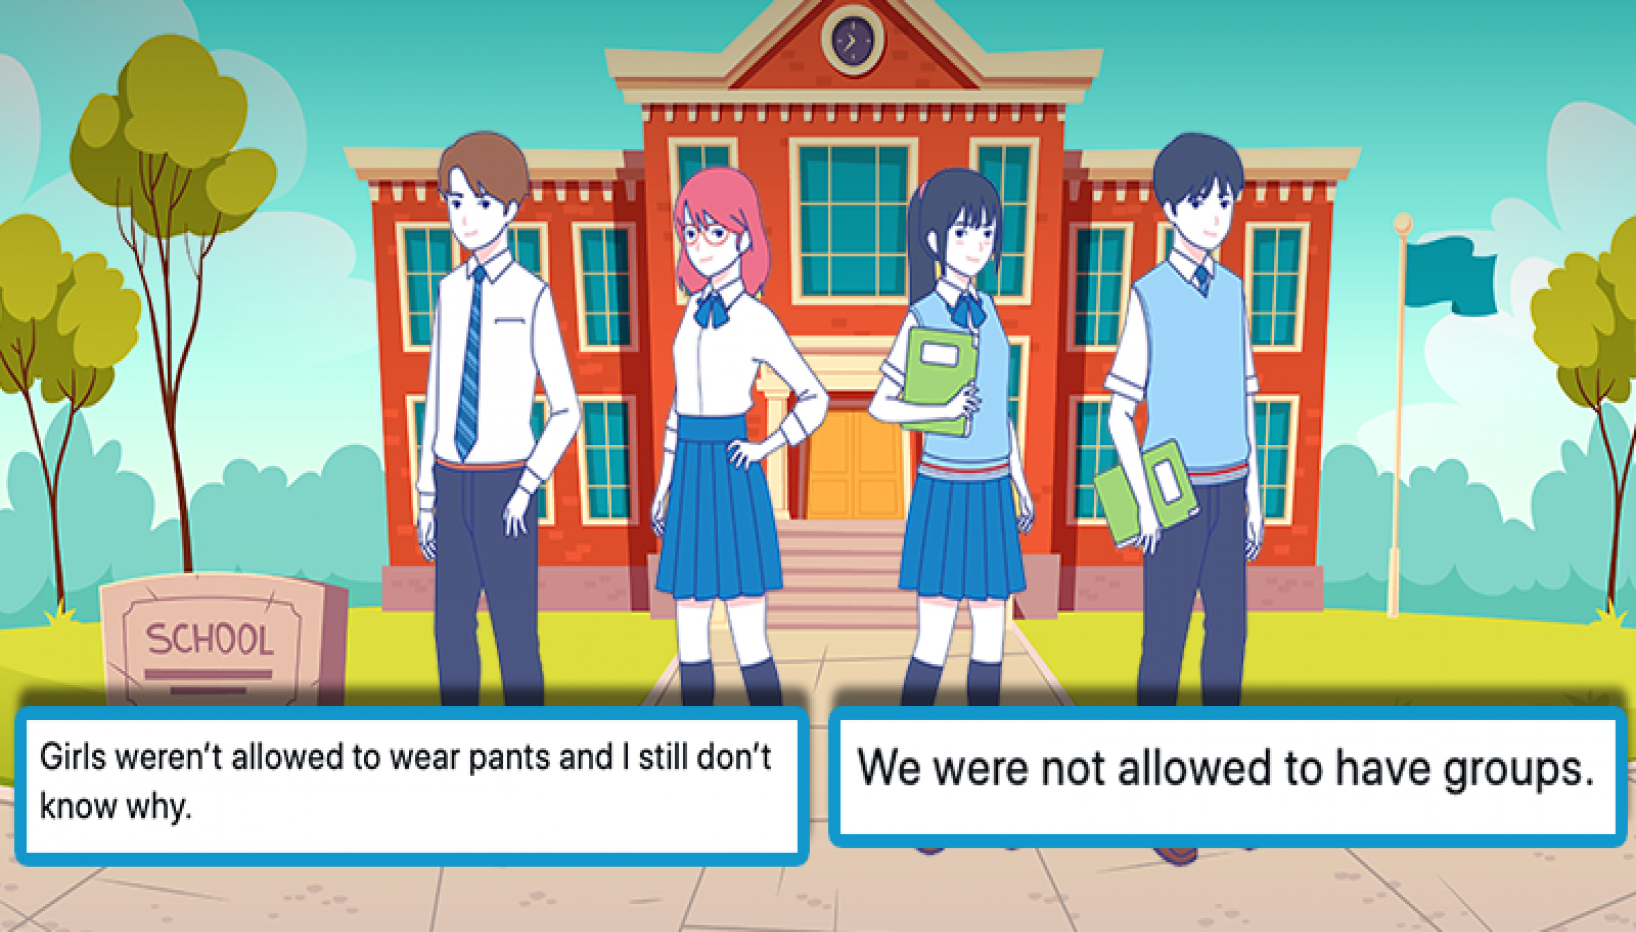 Nepali Netizens Share Dumb Rules From Their School / College That Only Served Body Policing